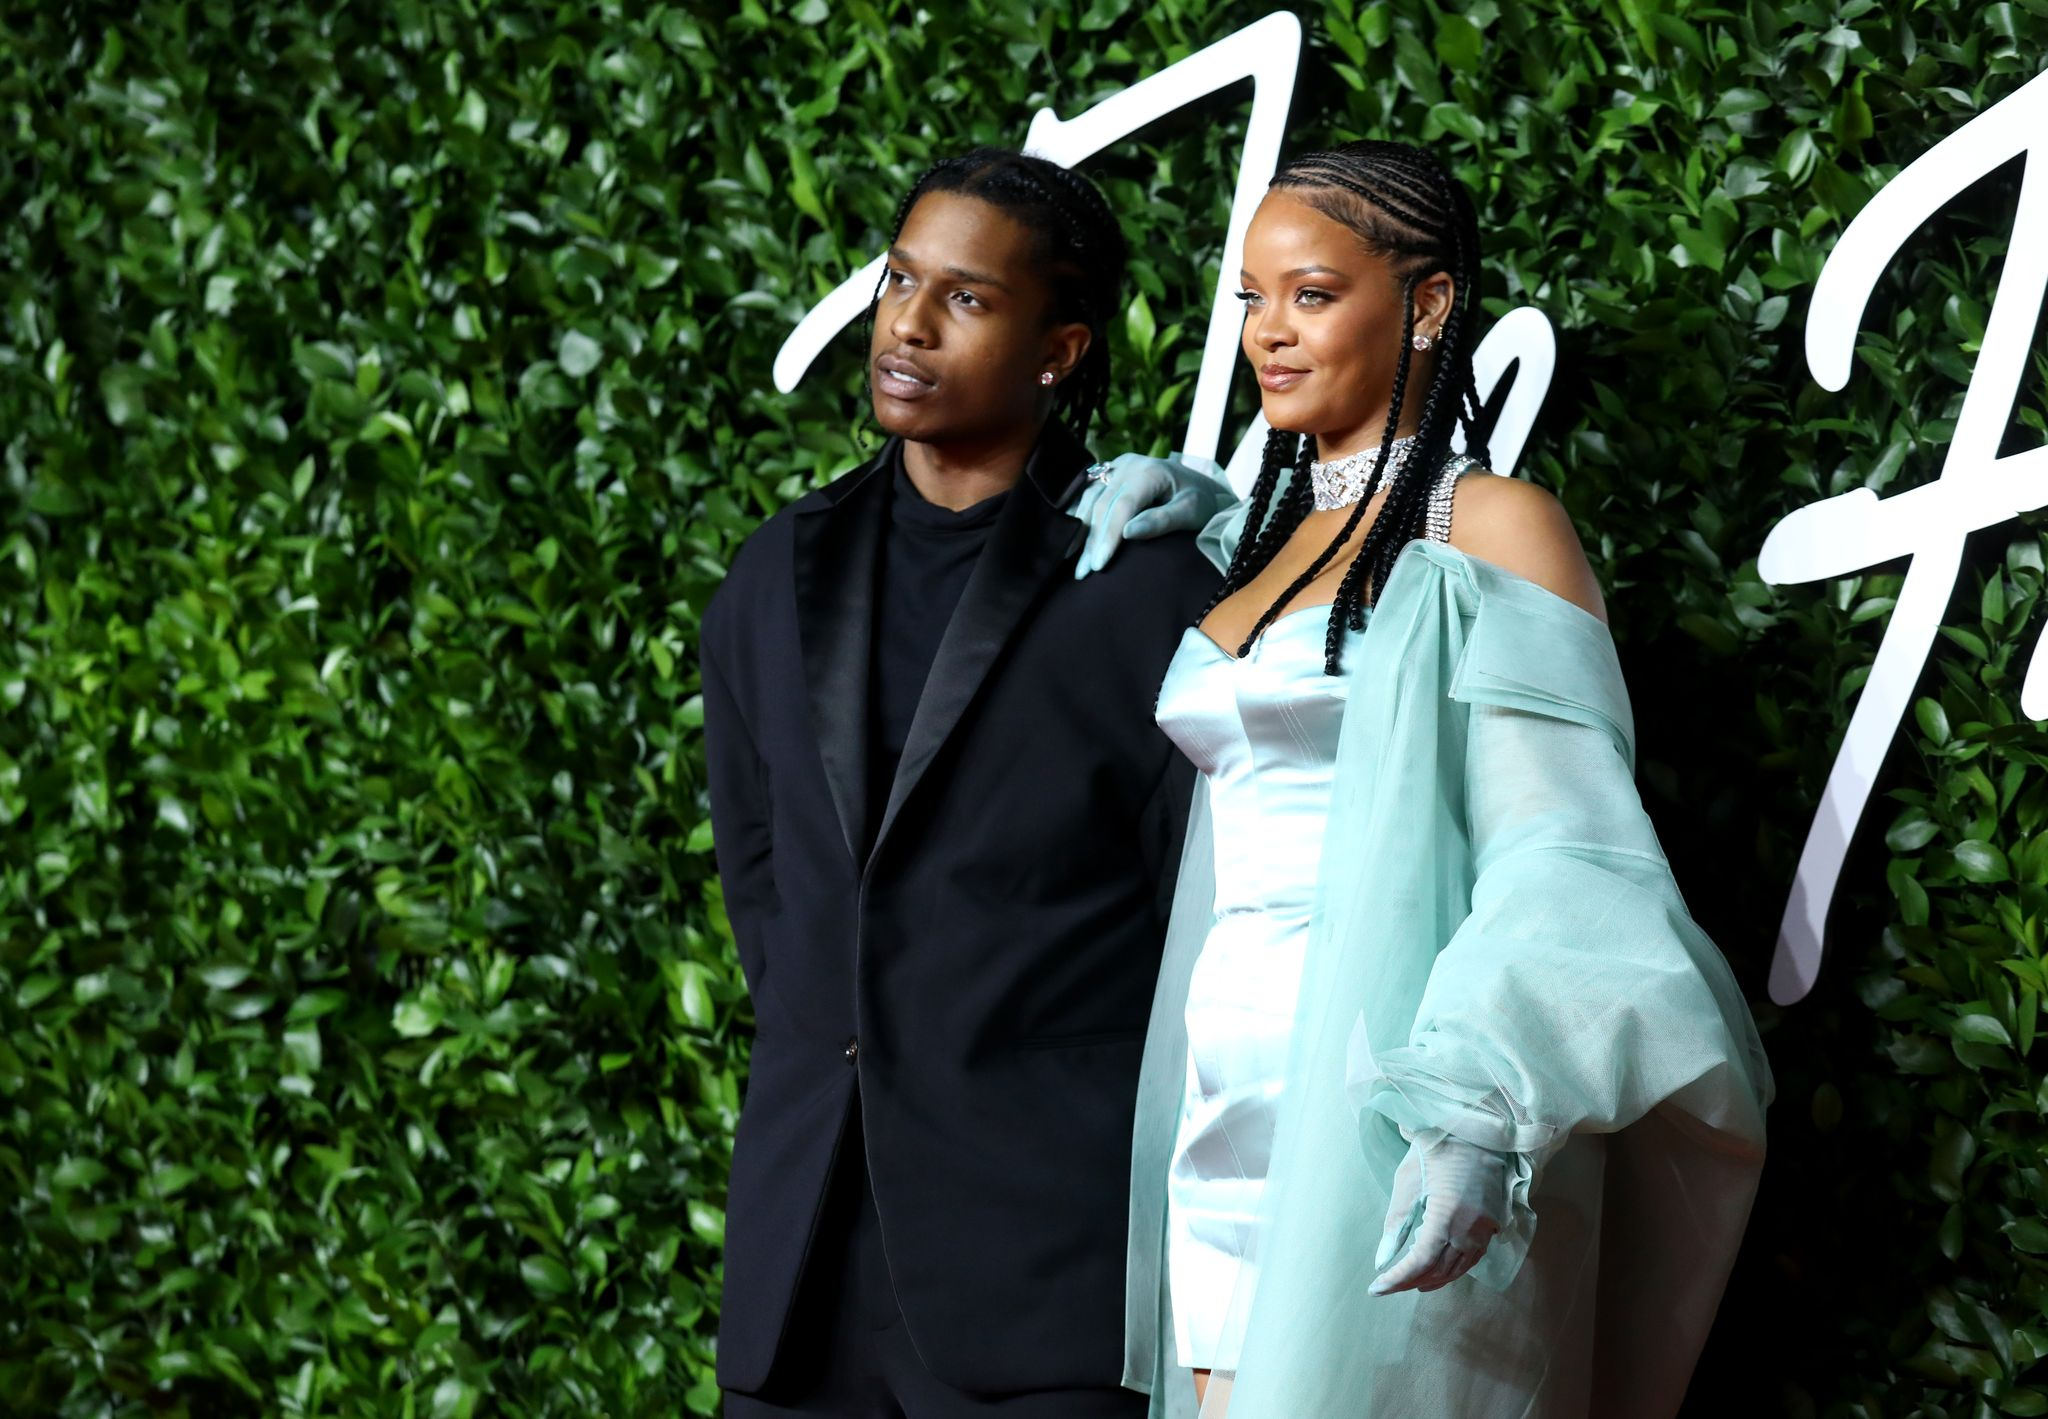 Rihanna and A$AP Rocky arrive at The Fashion Awards in 2019 in London, England. | Photo: Getty Images